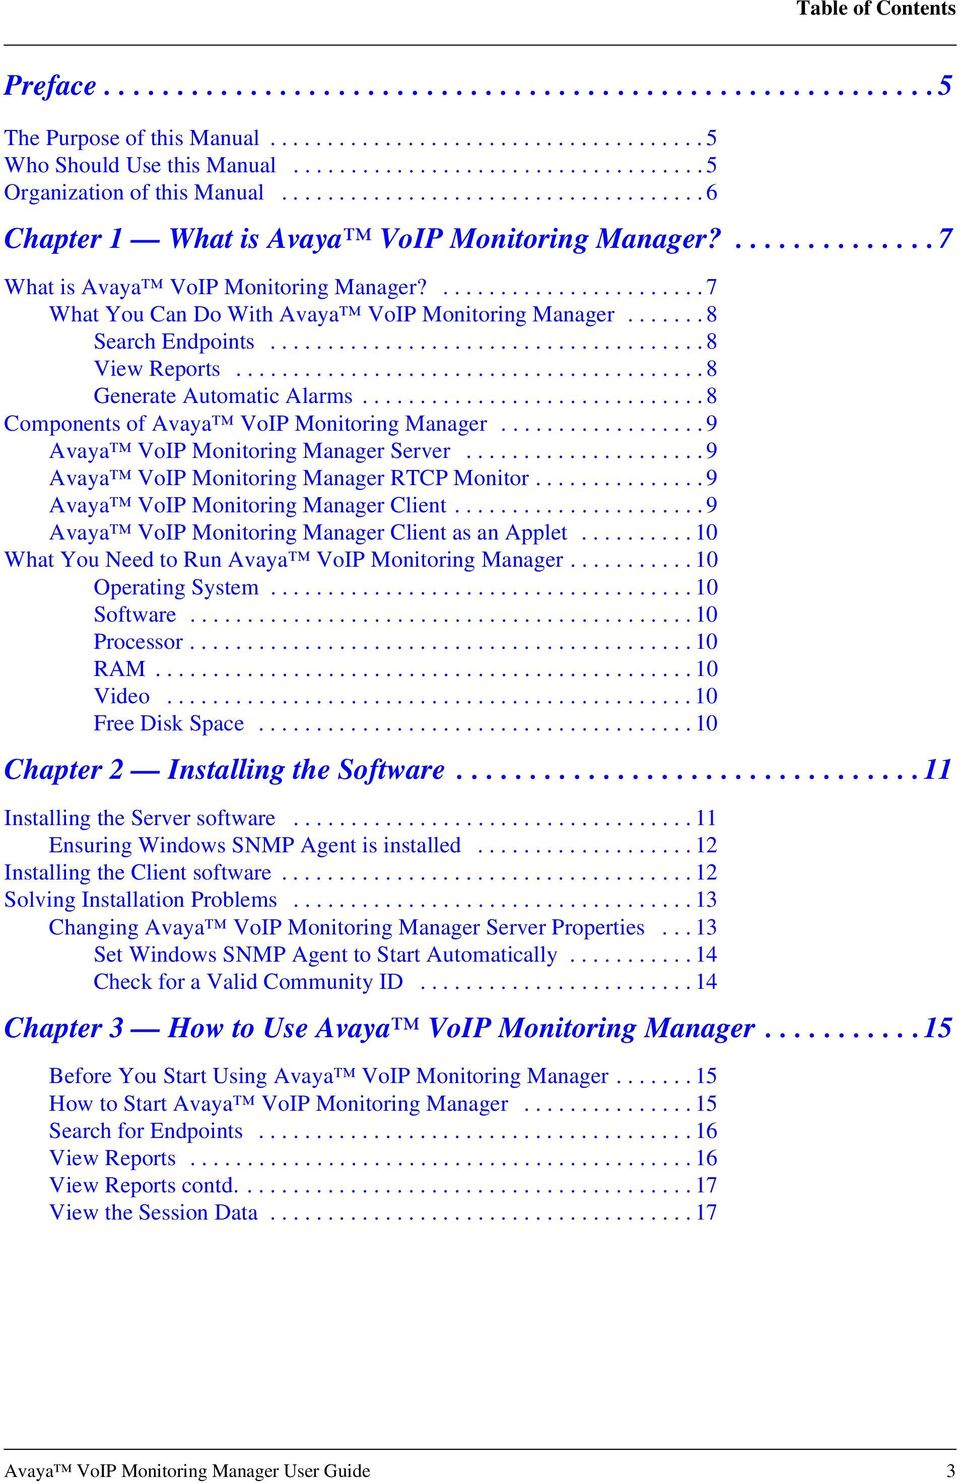 Avaya VoIP Monitoring Manager User Guide - PDF